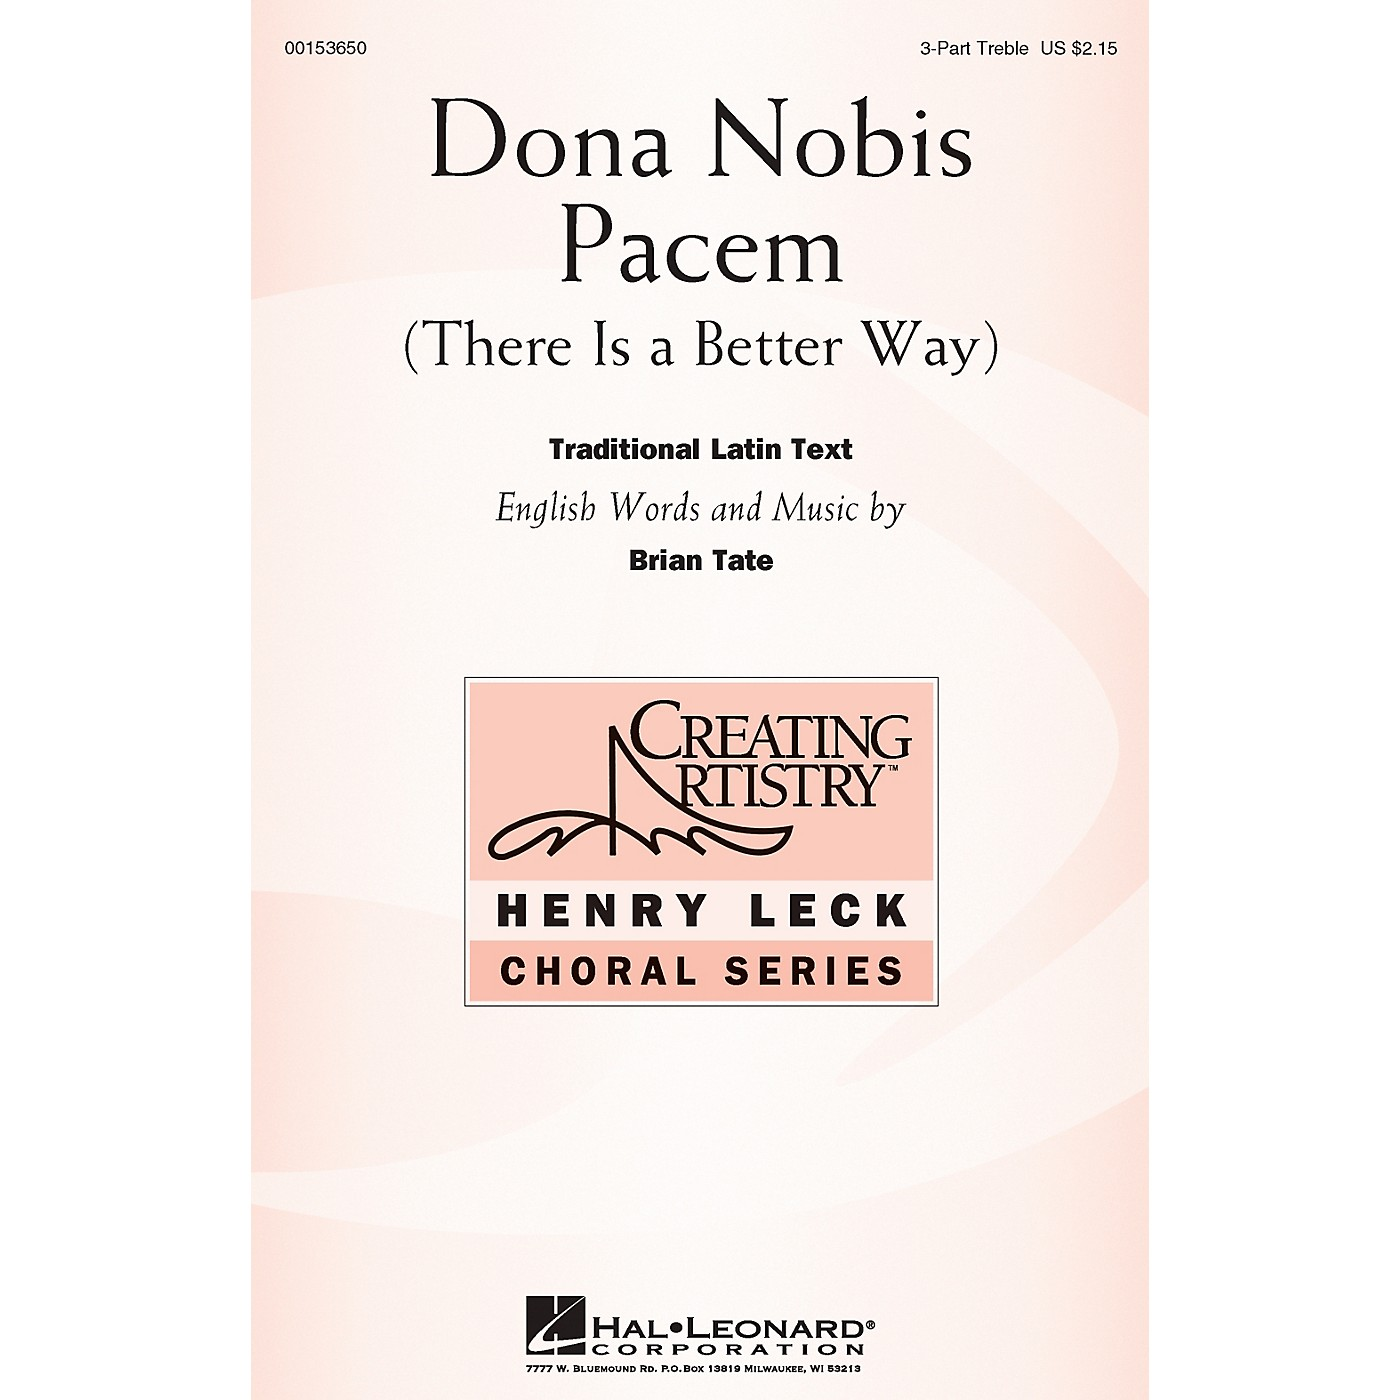 Hal Leonard Dona Nobis Pacem (There Is a Better Way) 3 Part Treble composed by Brian Tate thumbnail